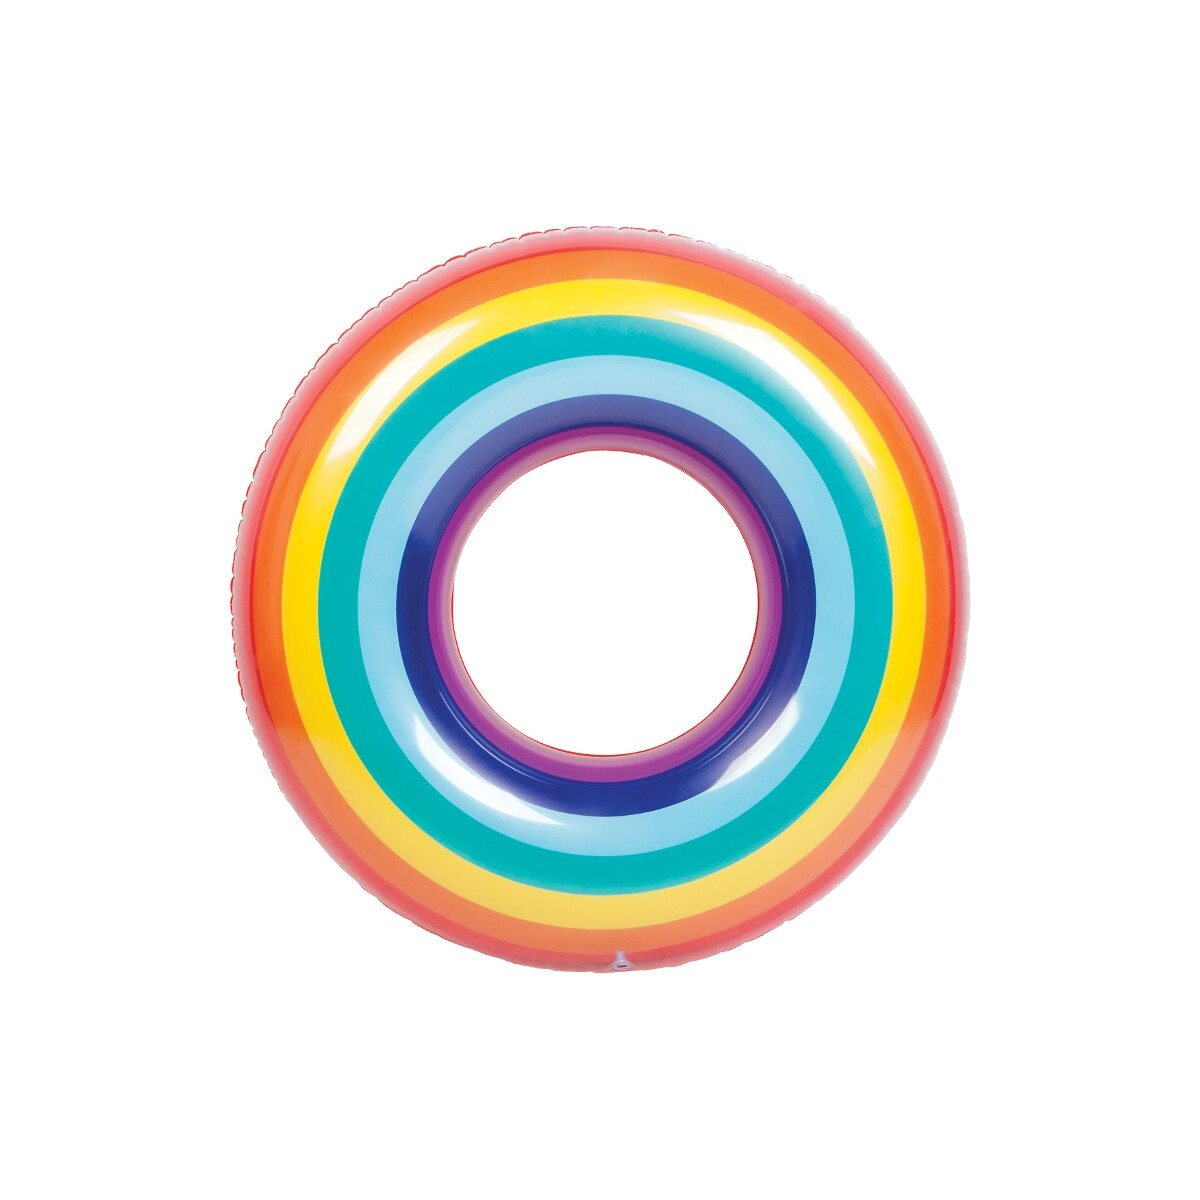 Pool Ring Rainbow - Top View